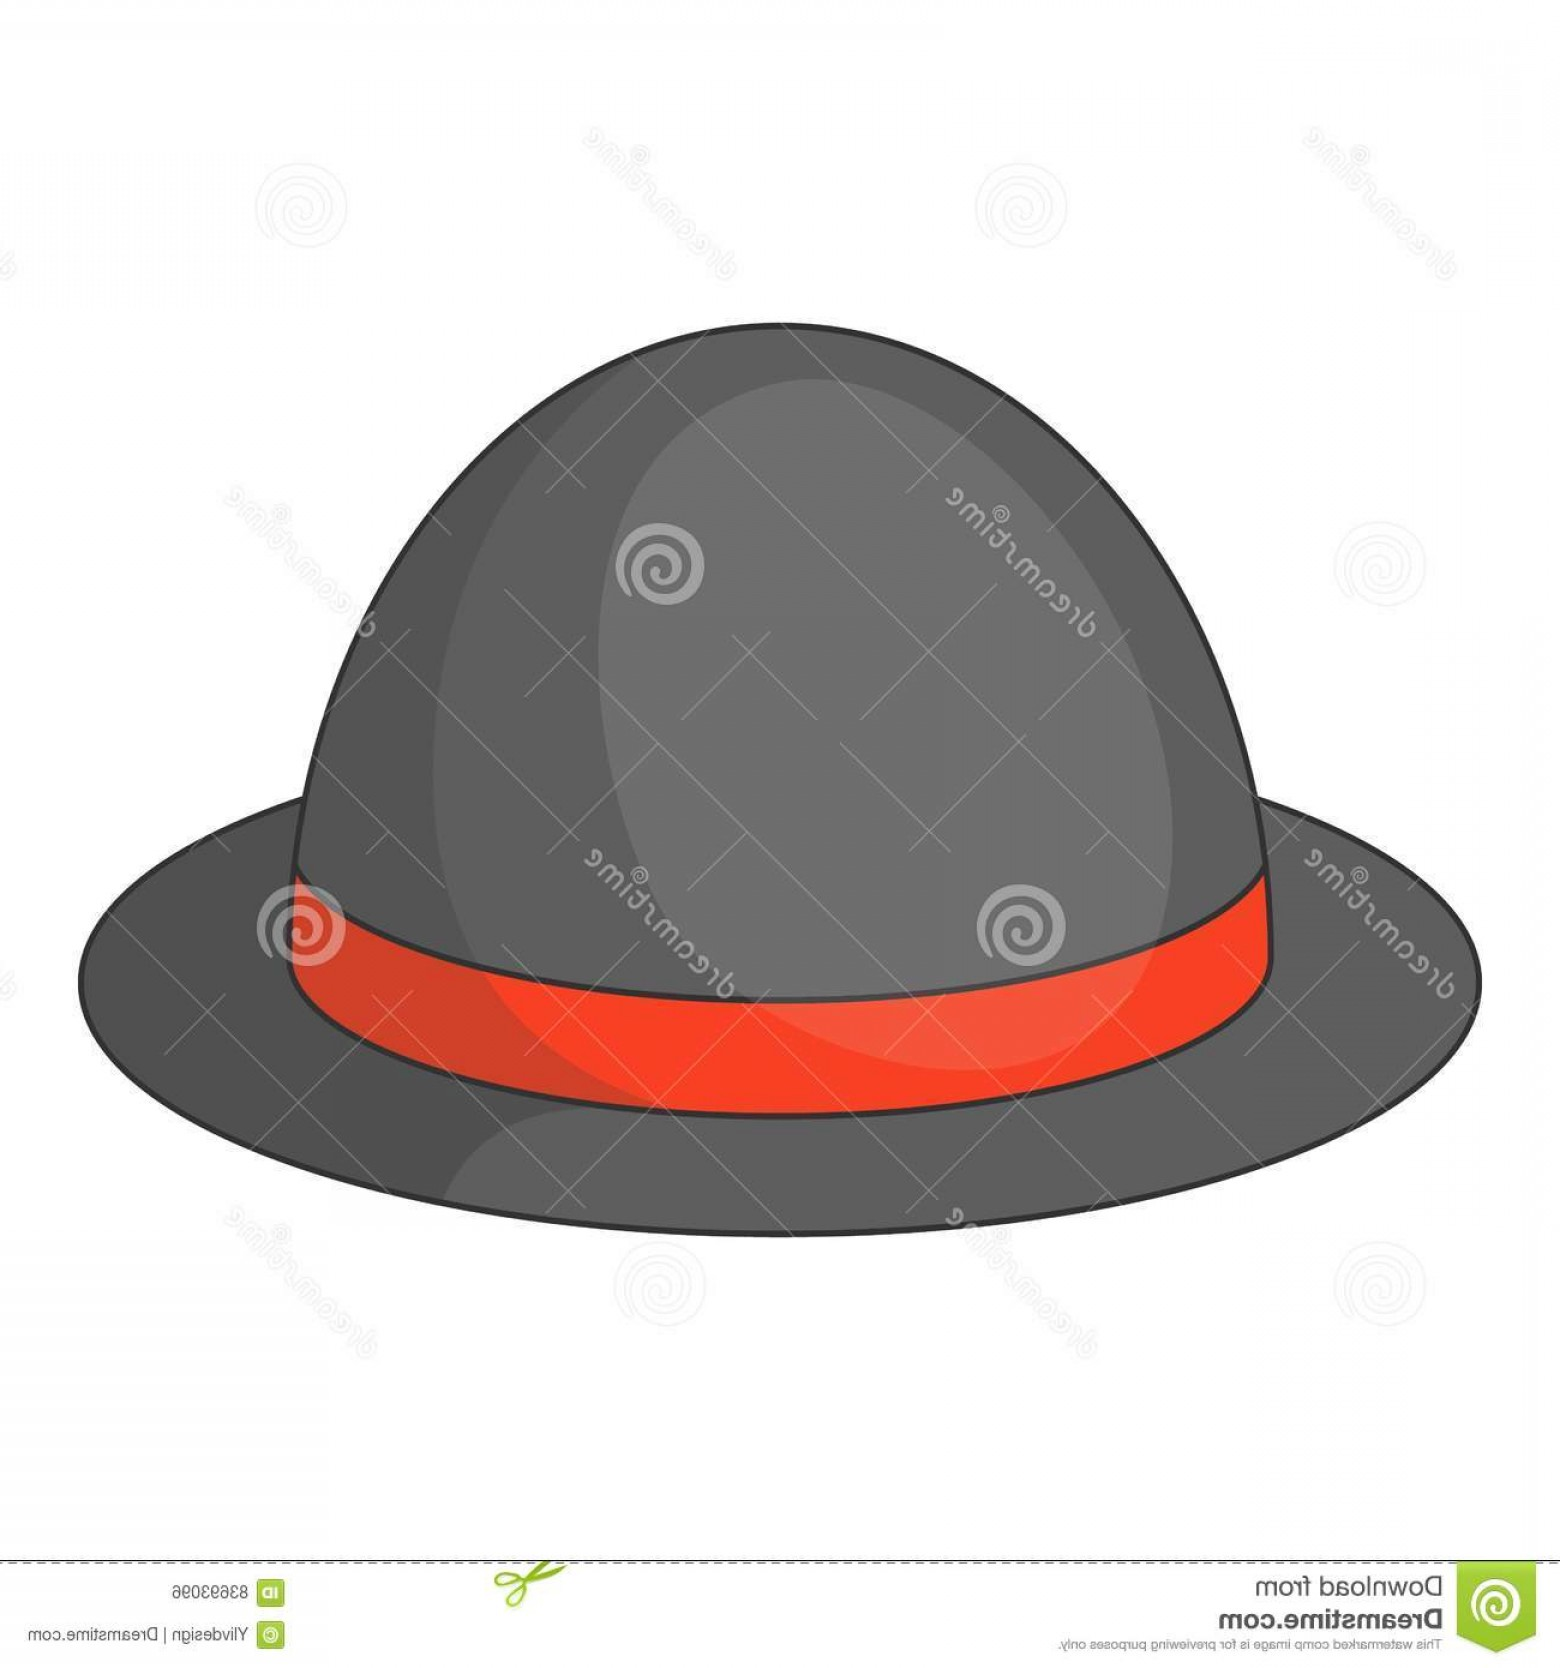 Bowler Hat Vector: Stock Illustration Bowler Hat Icon Cartoon Style Illustration Vector Web Design Image